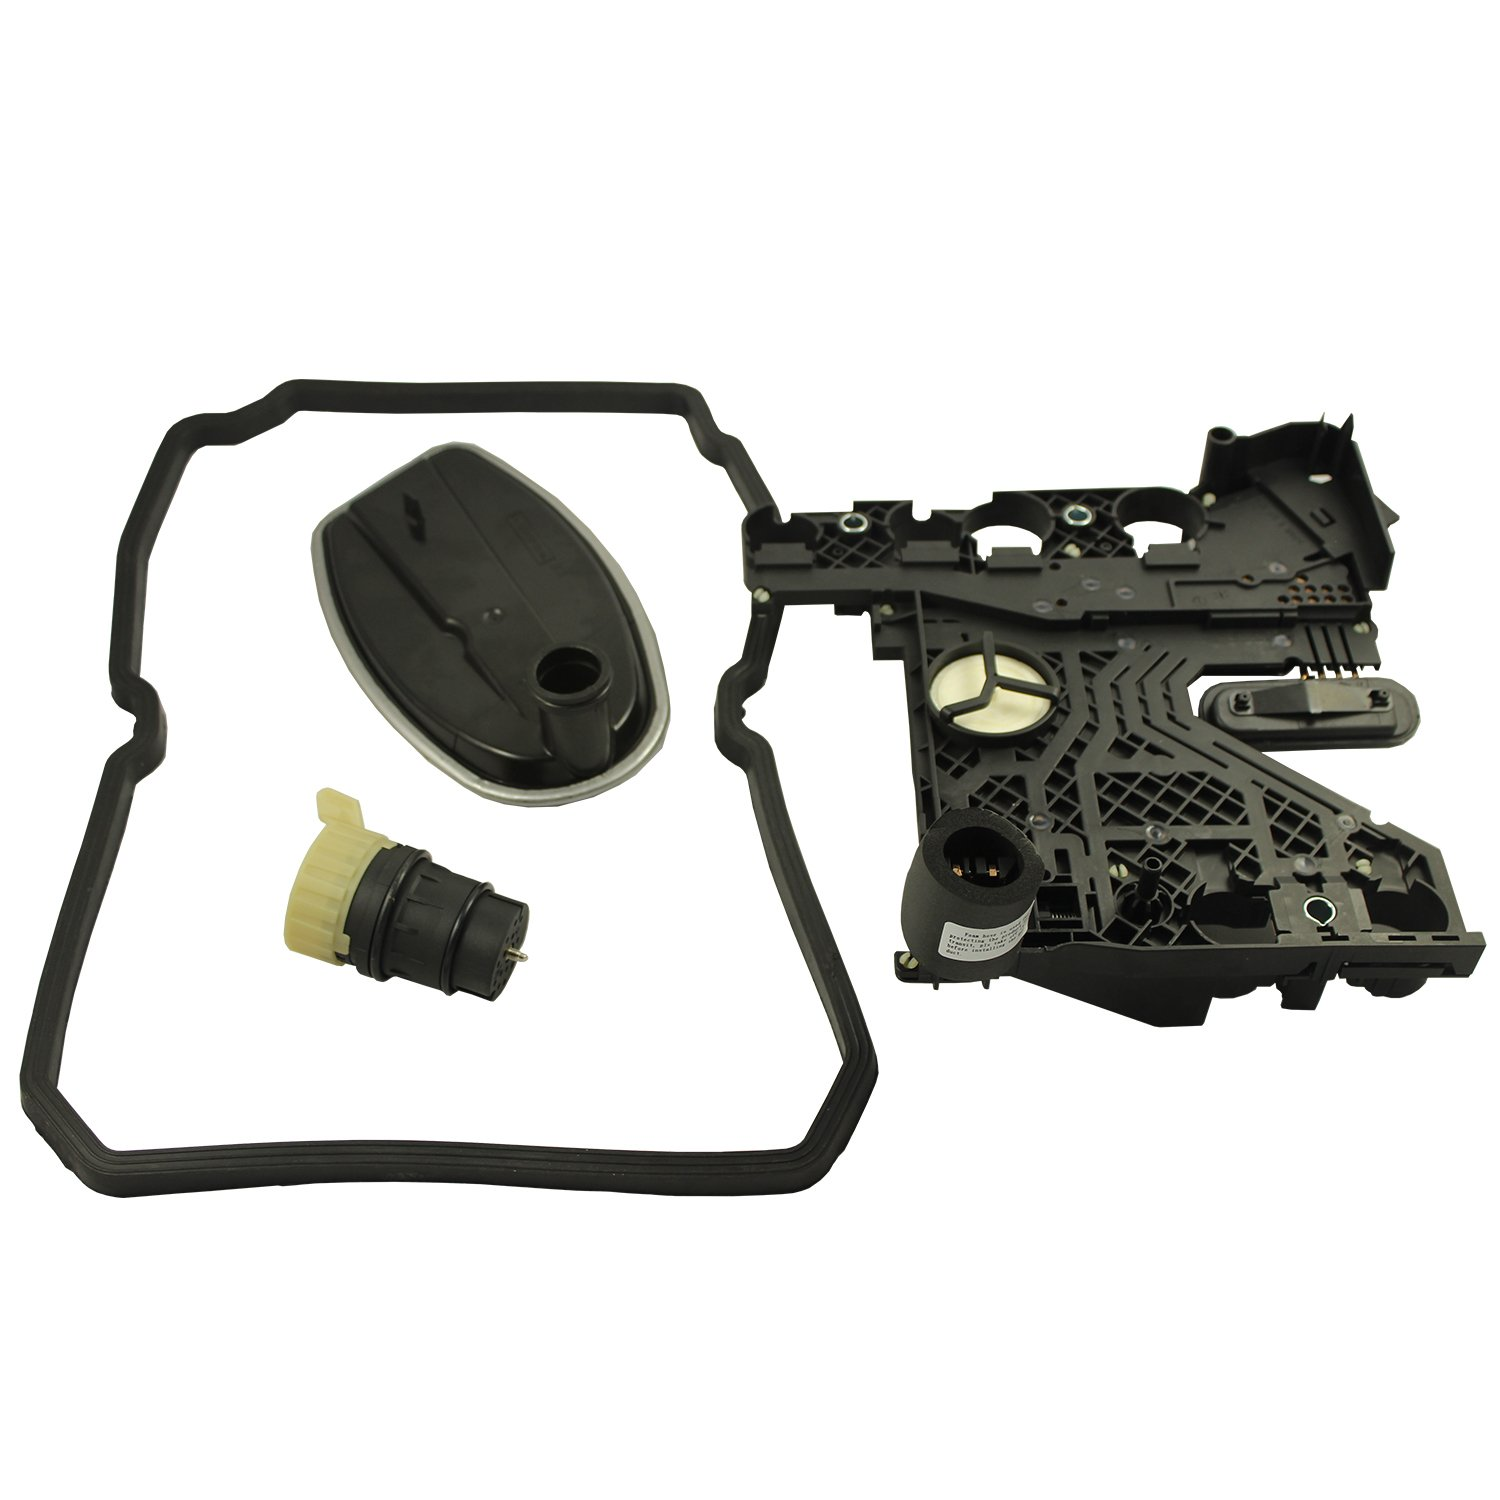 JDMSPEED New 028780 Transmission Conductor Plate + Connector + Filter + Gasket Kit For Mercedes Benz # 1402701161 2035400253 68049181AA